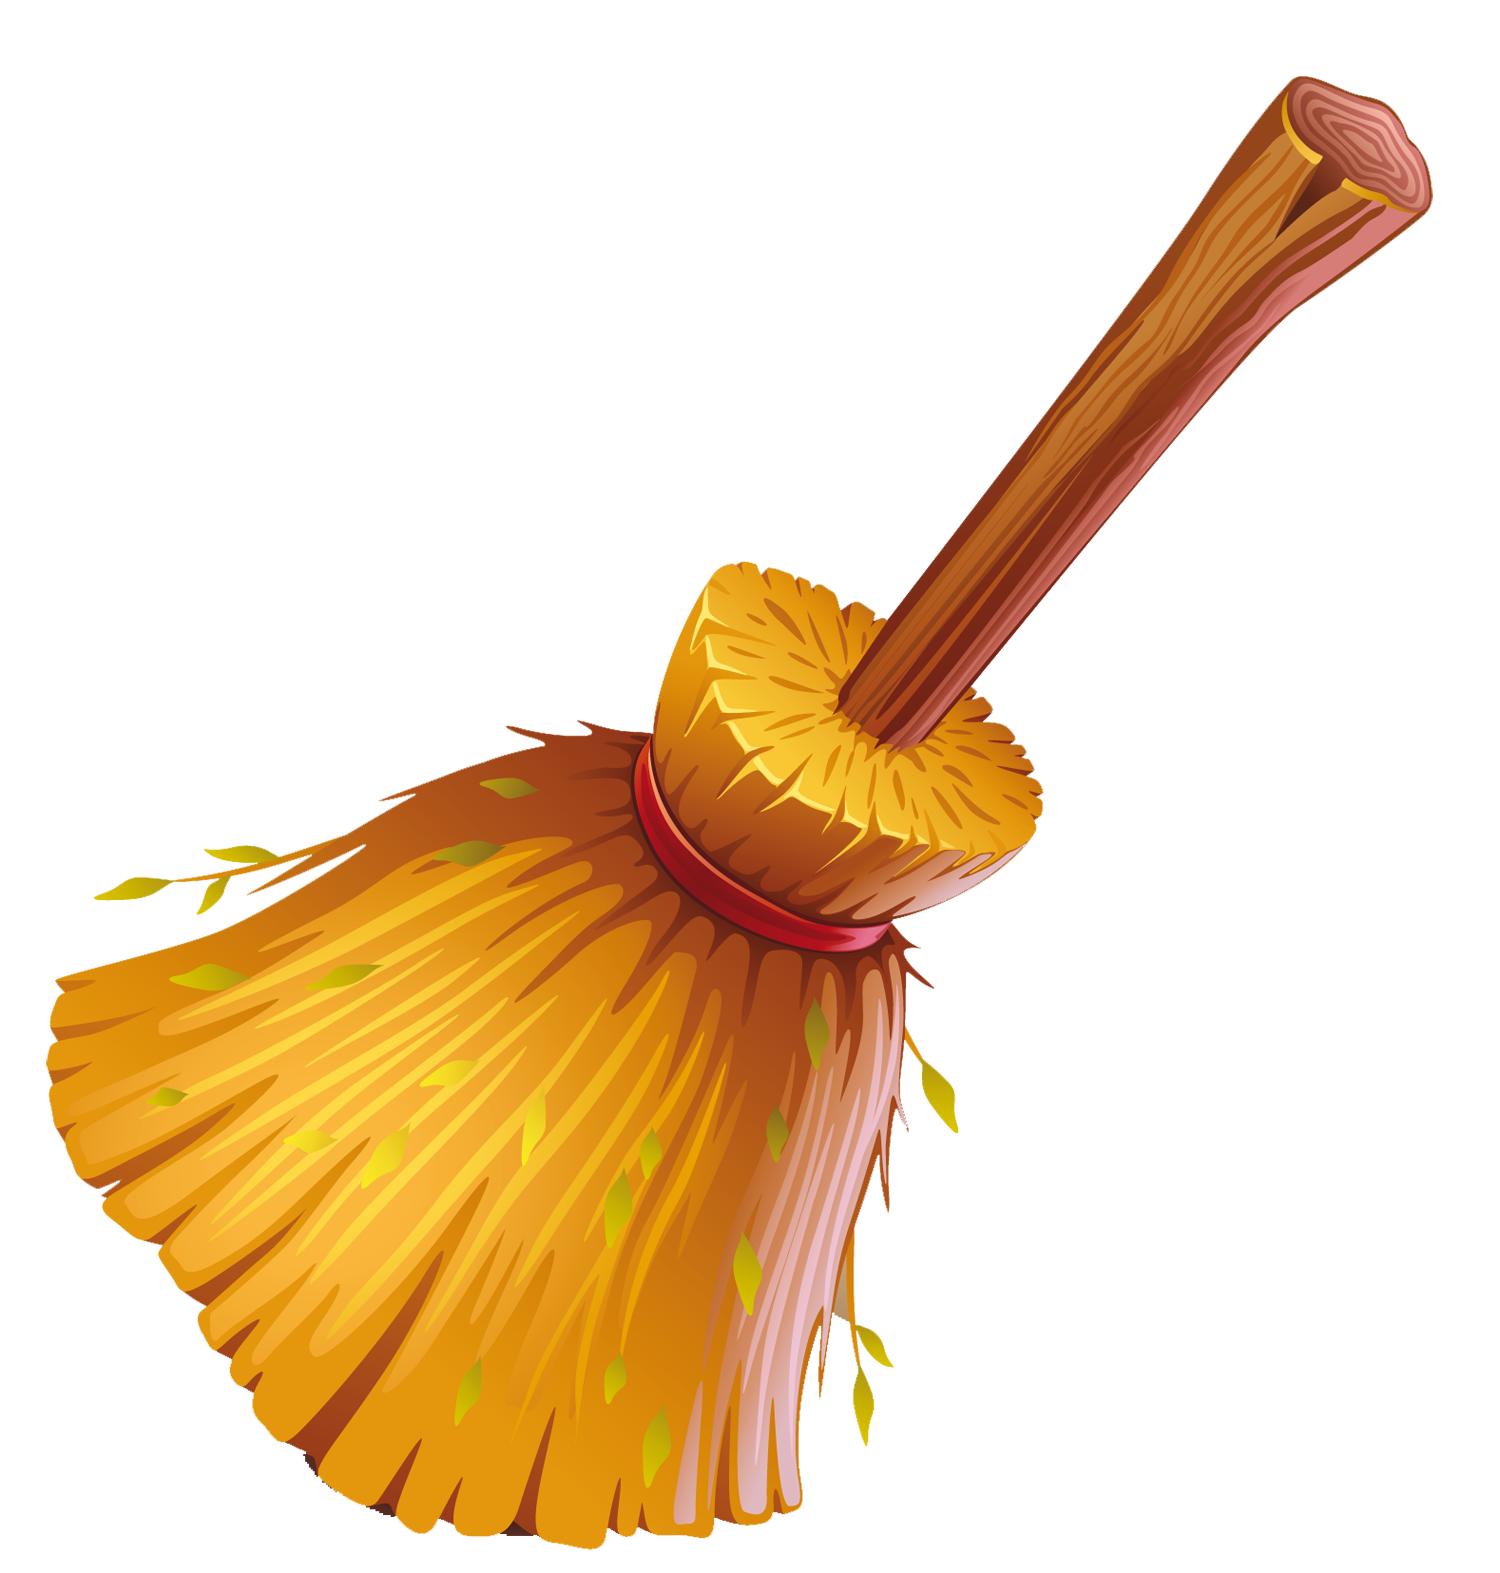 Free Witch Broom Cliparts, Download Free Clip Art, Free Clip.